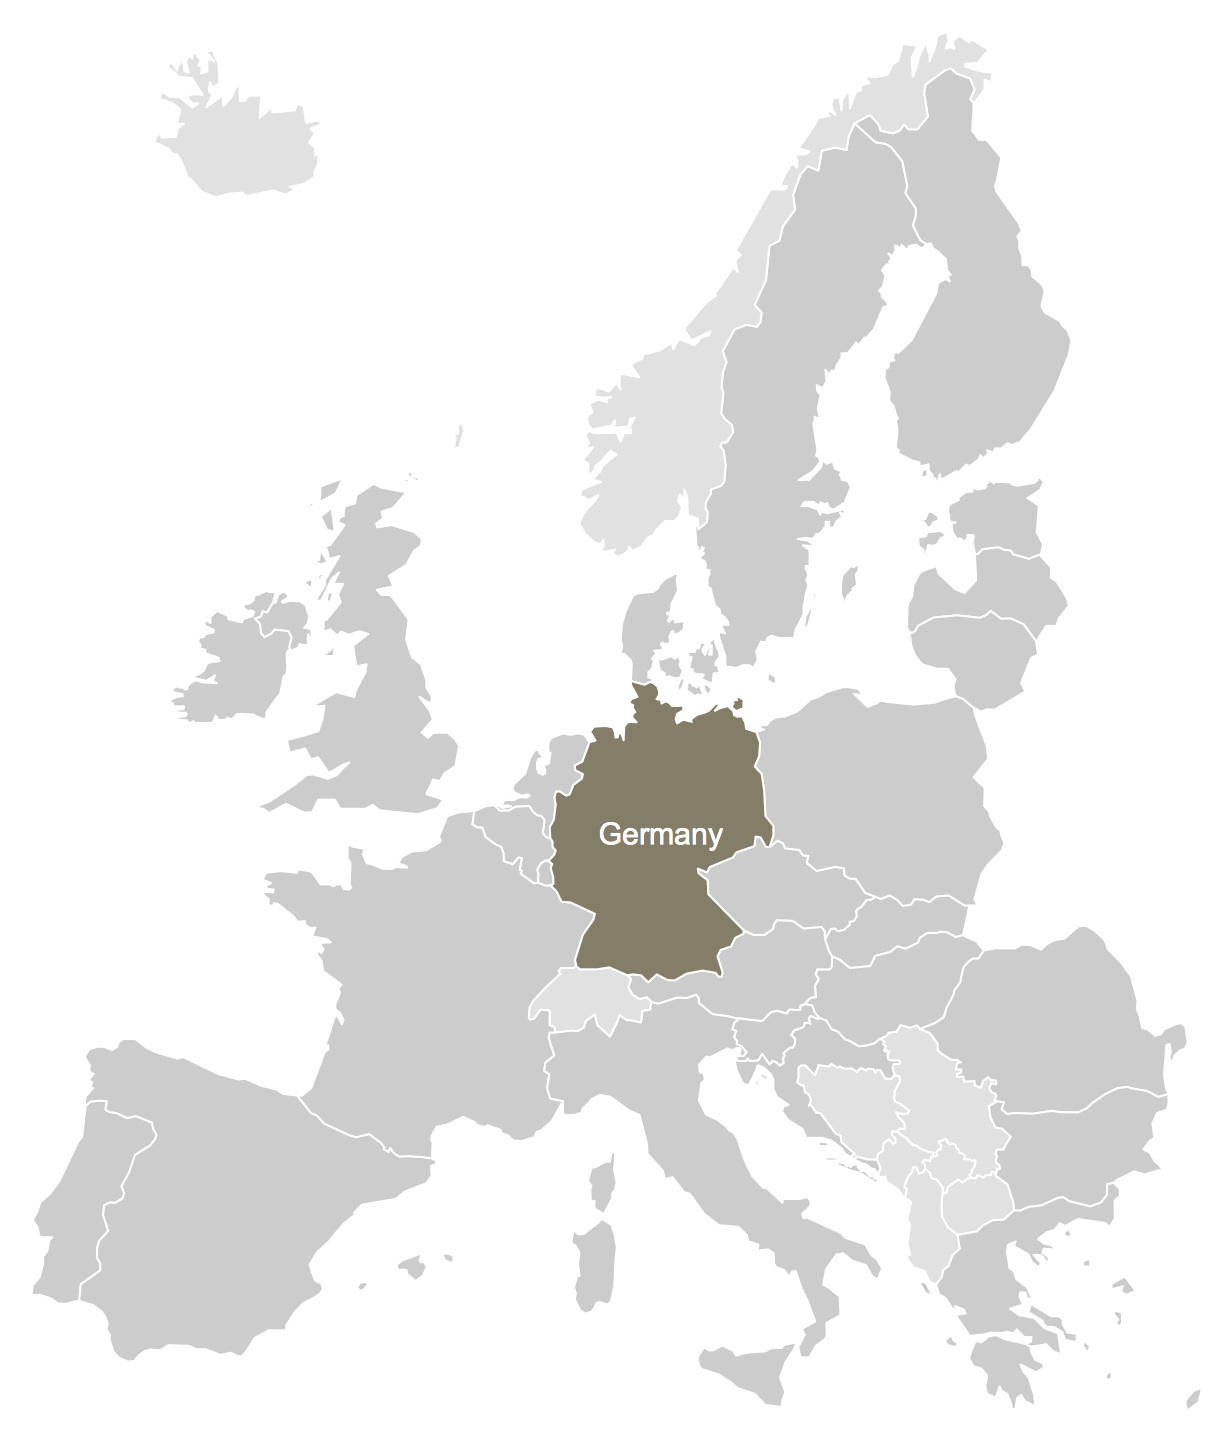 Germany Location Map